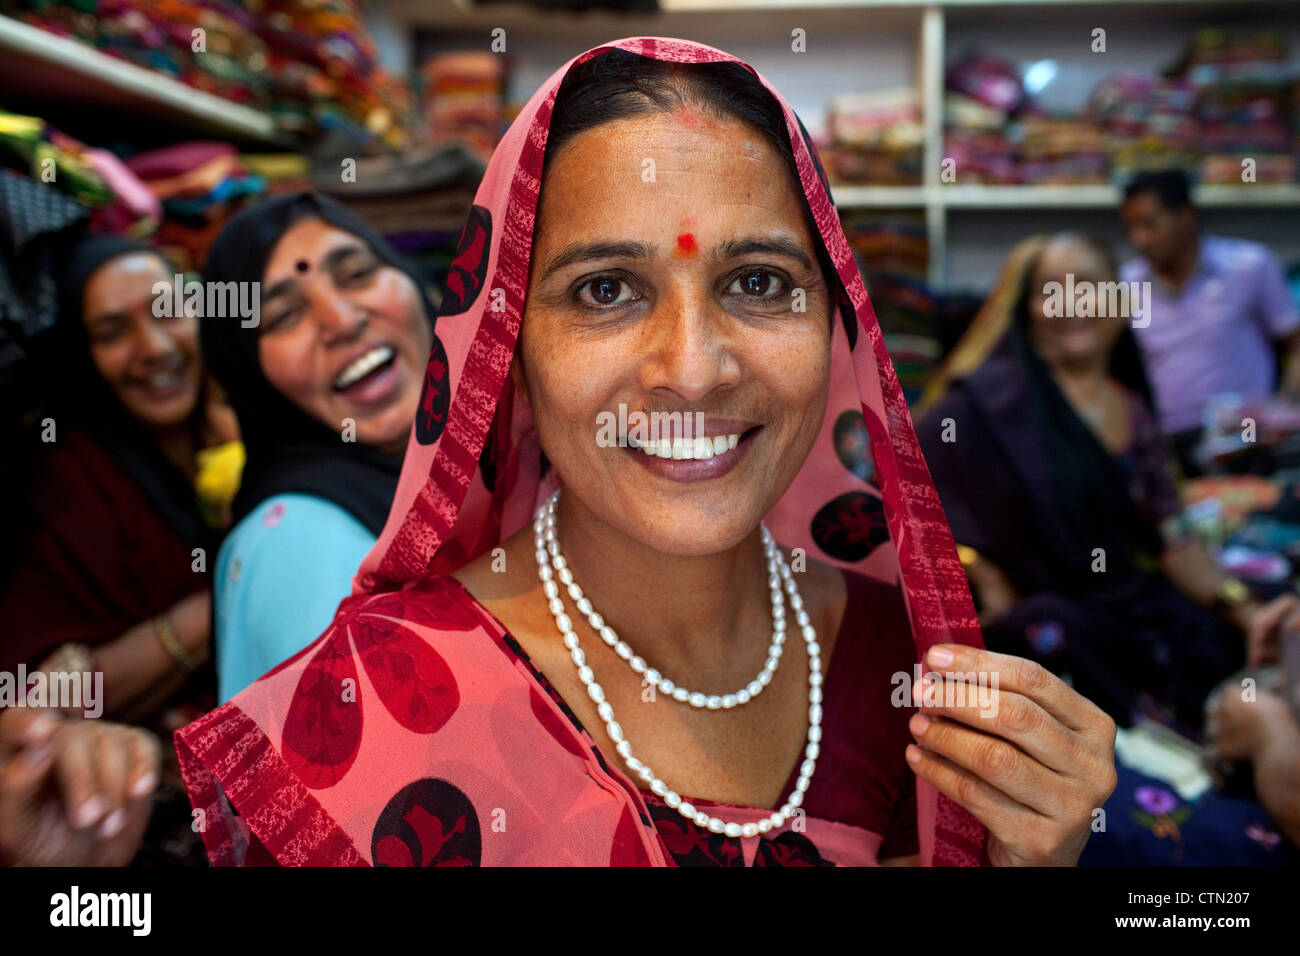 A portrait of smiling pretty Rabari women wearing traditional sari clothes in a textile shop in Ahmedabad, Gujarat - Stock Image